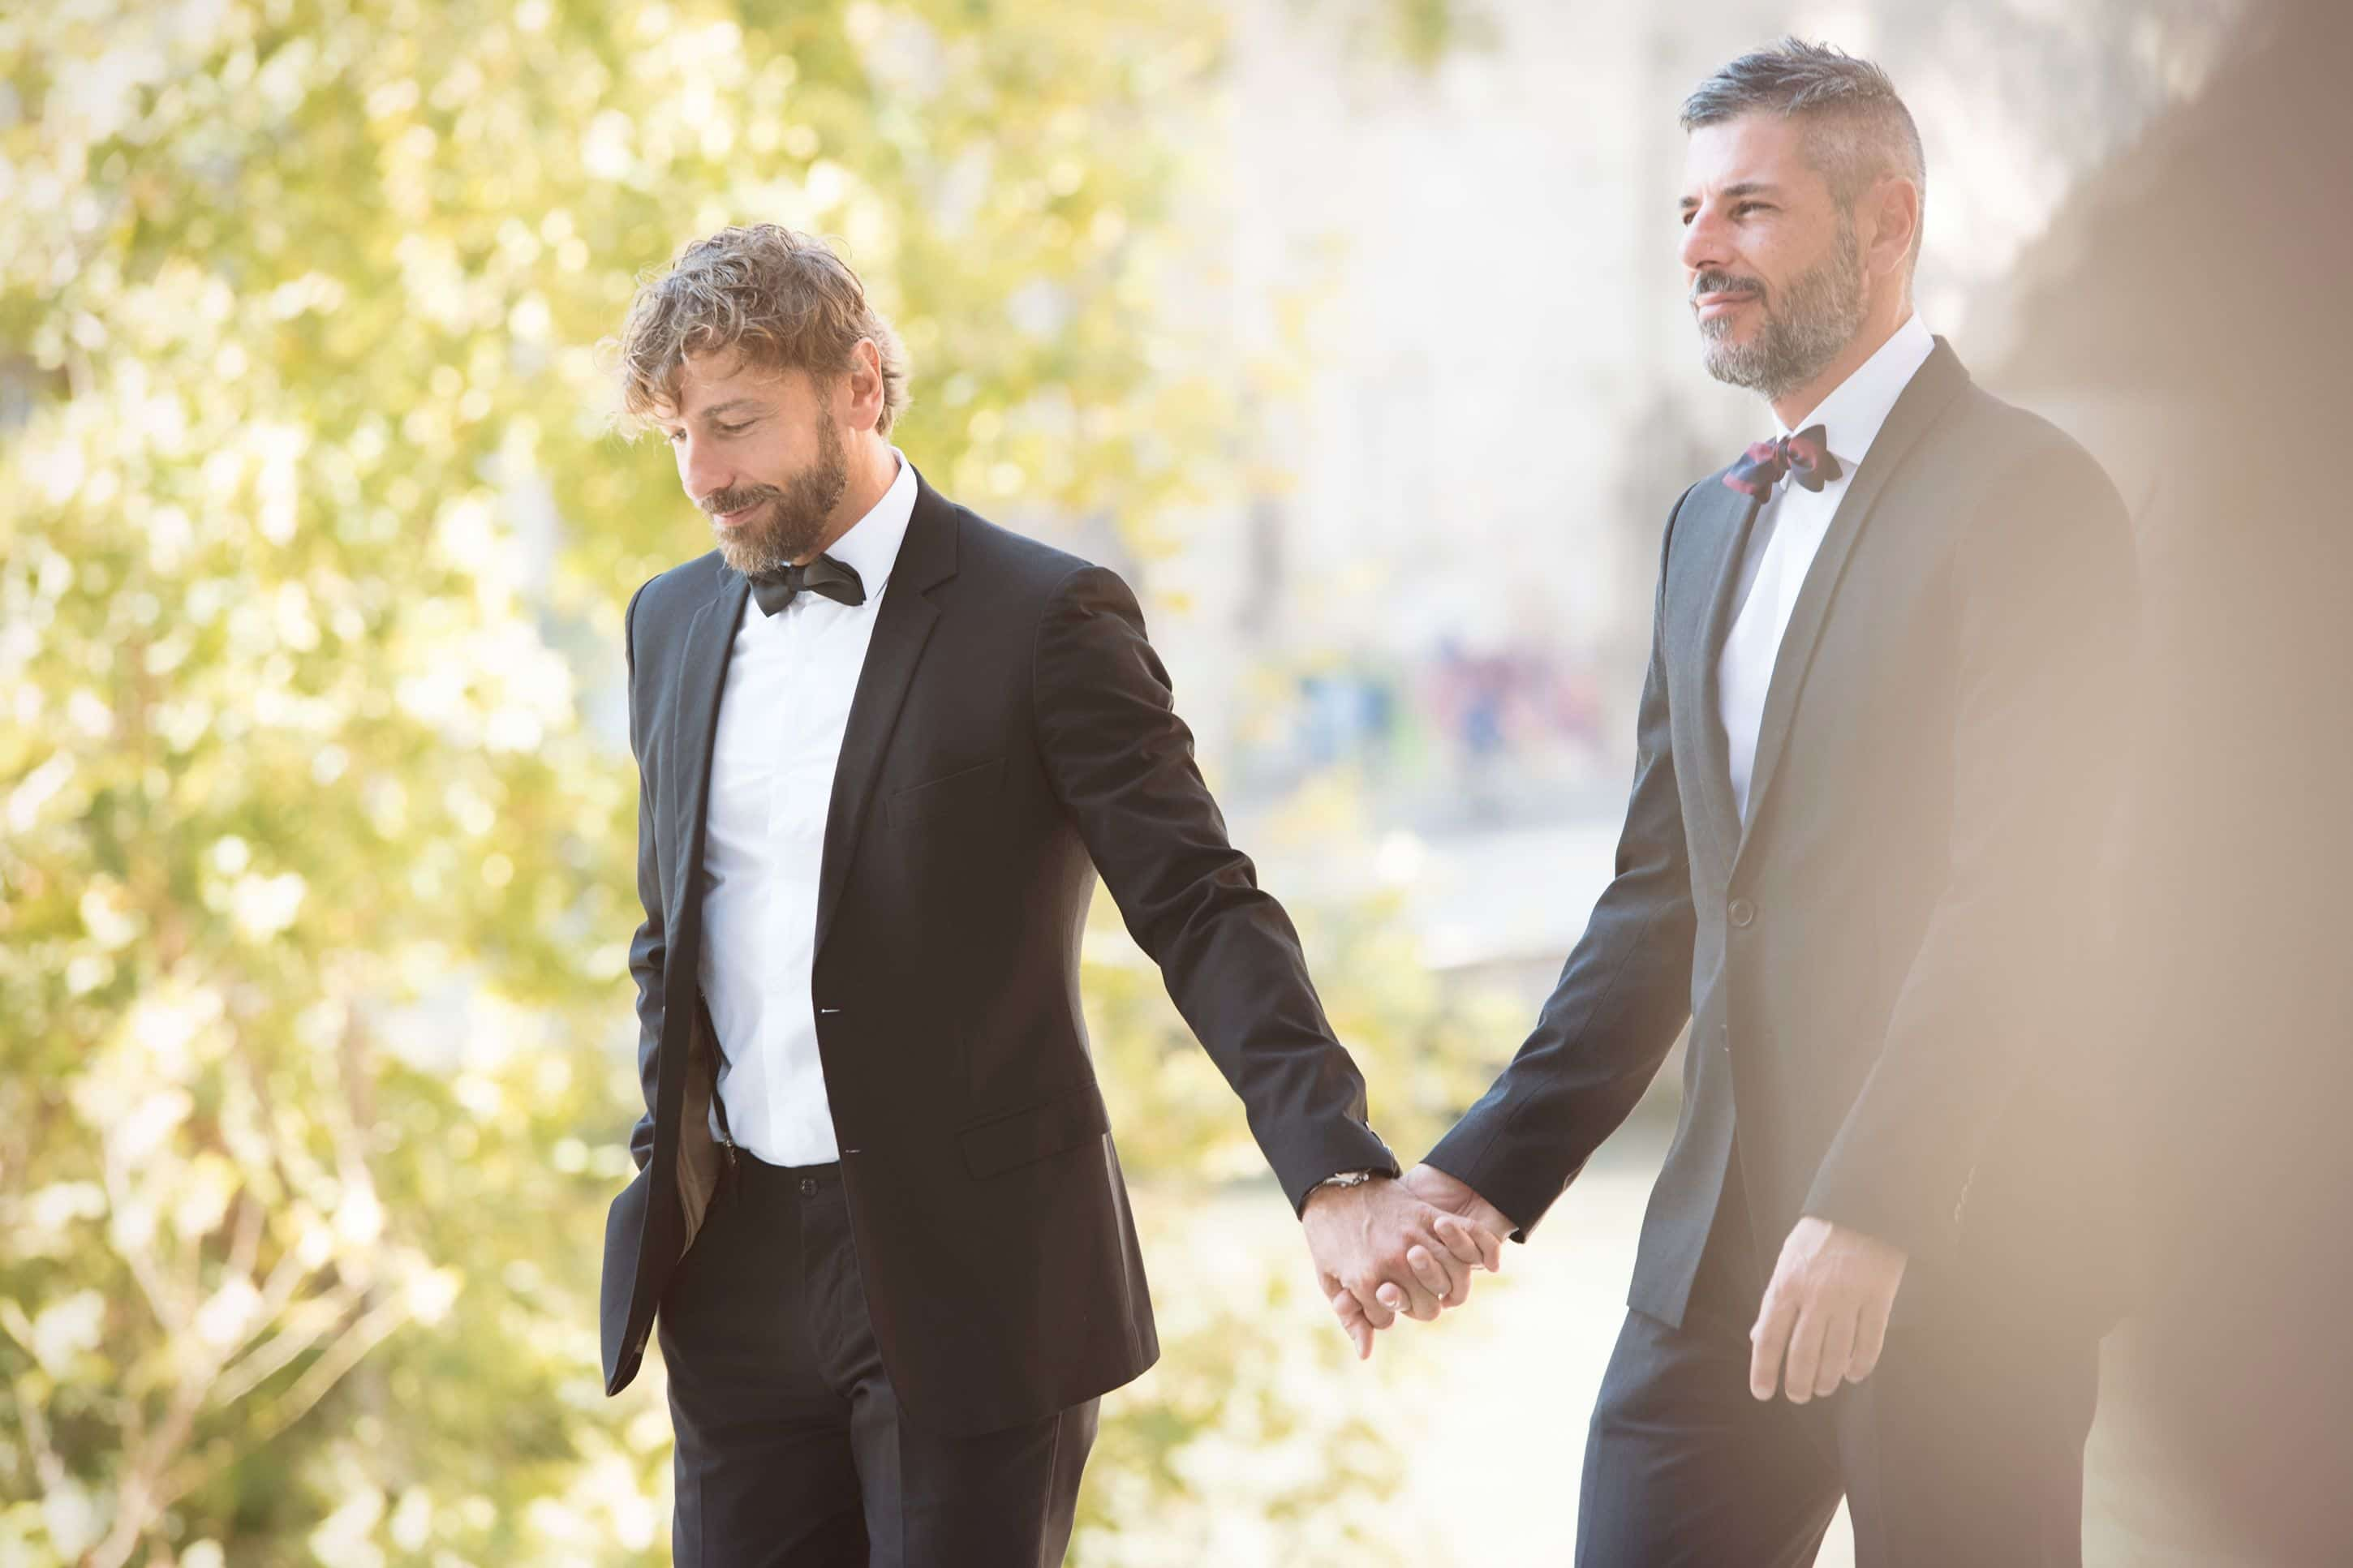 We're Next Says Italy After Irish Gay Marriage Vote